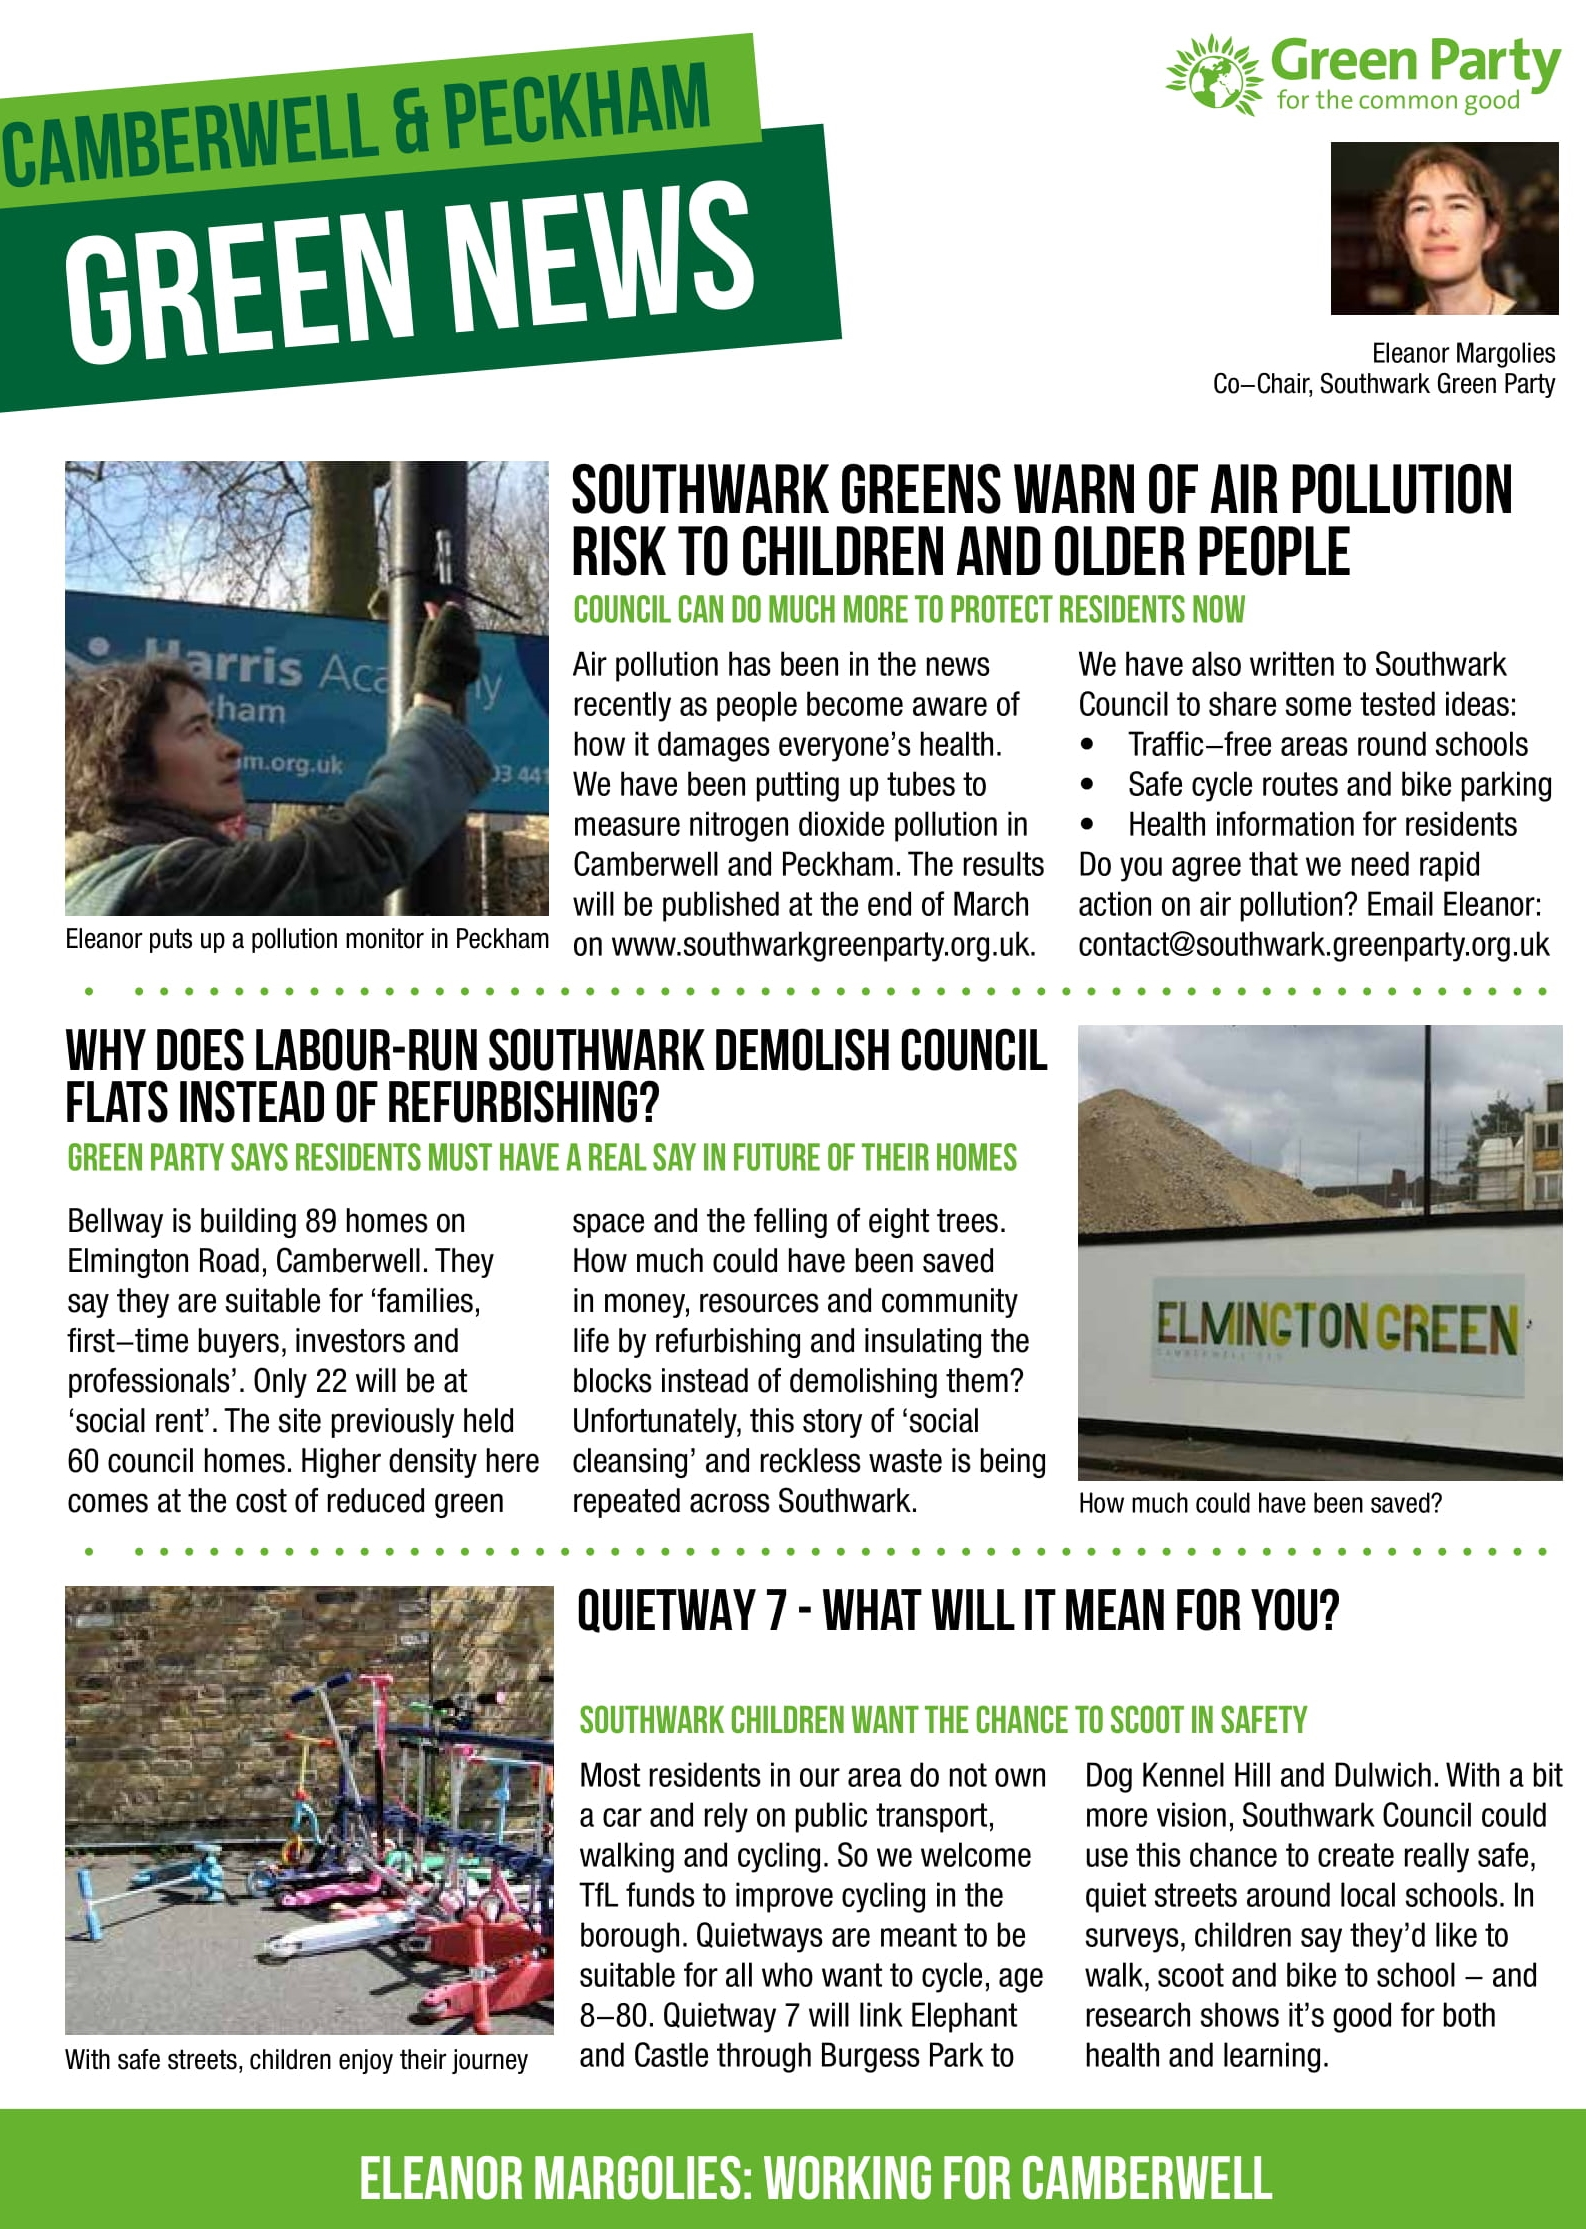 01a._camberwell_and_peckham_green_news_March_2017.jpg